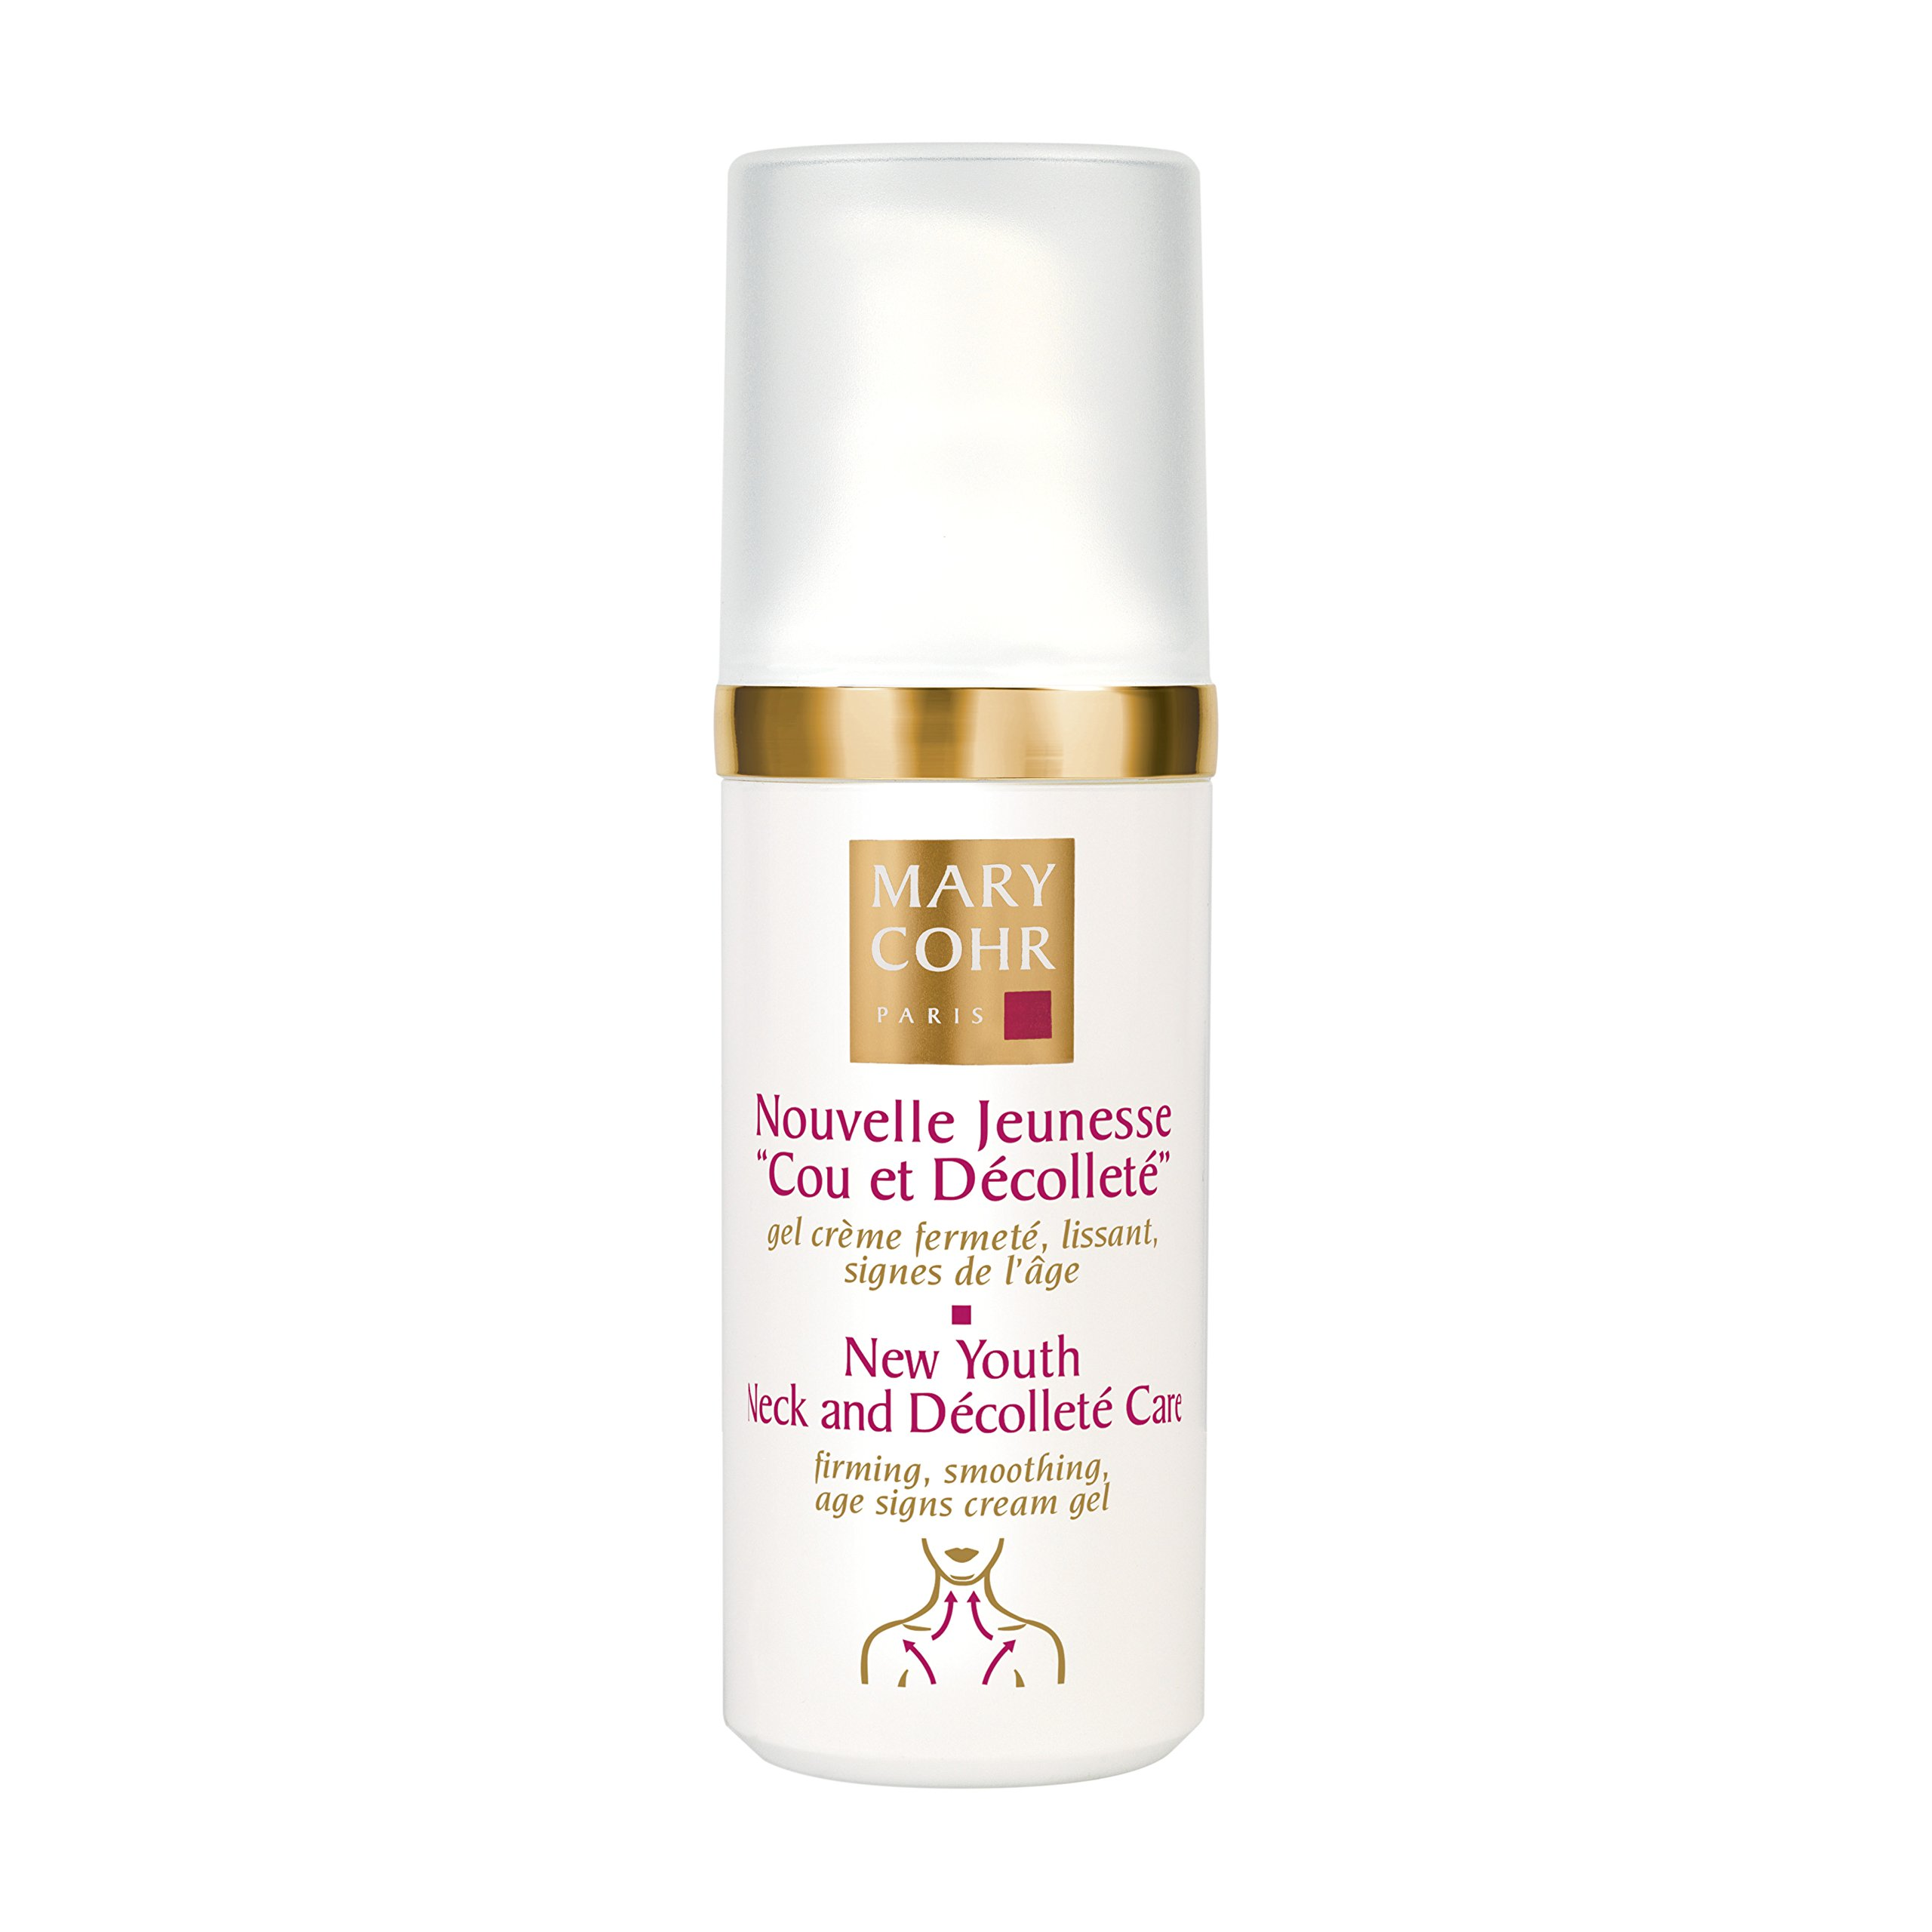 Mary Cohr New Youth Neck & Decollete Care, 30 Gram